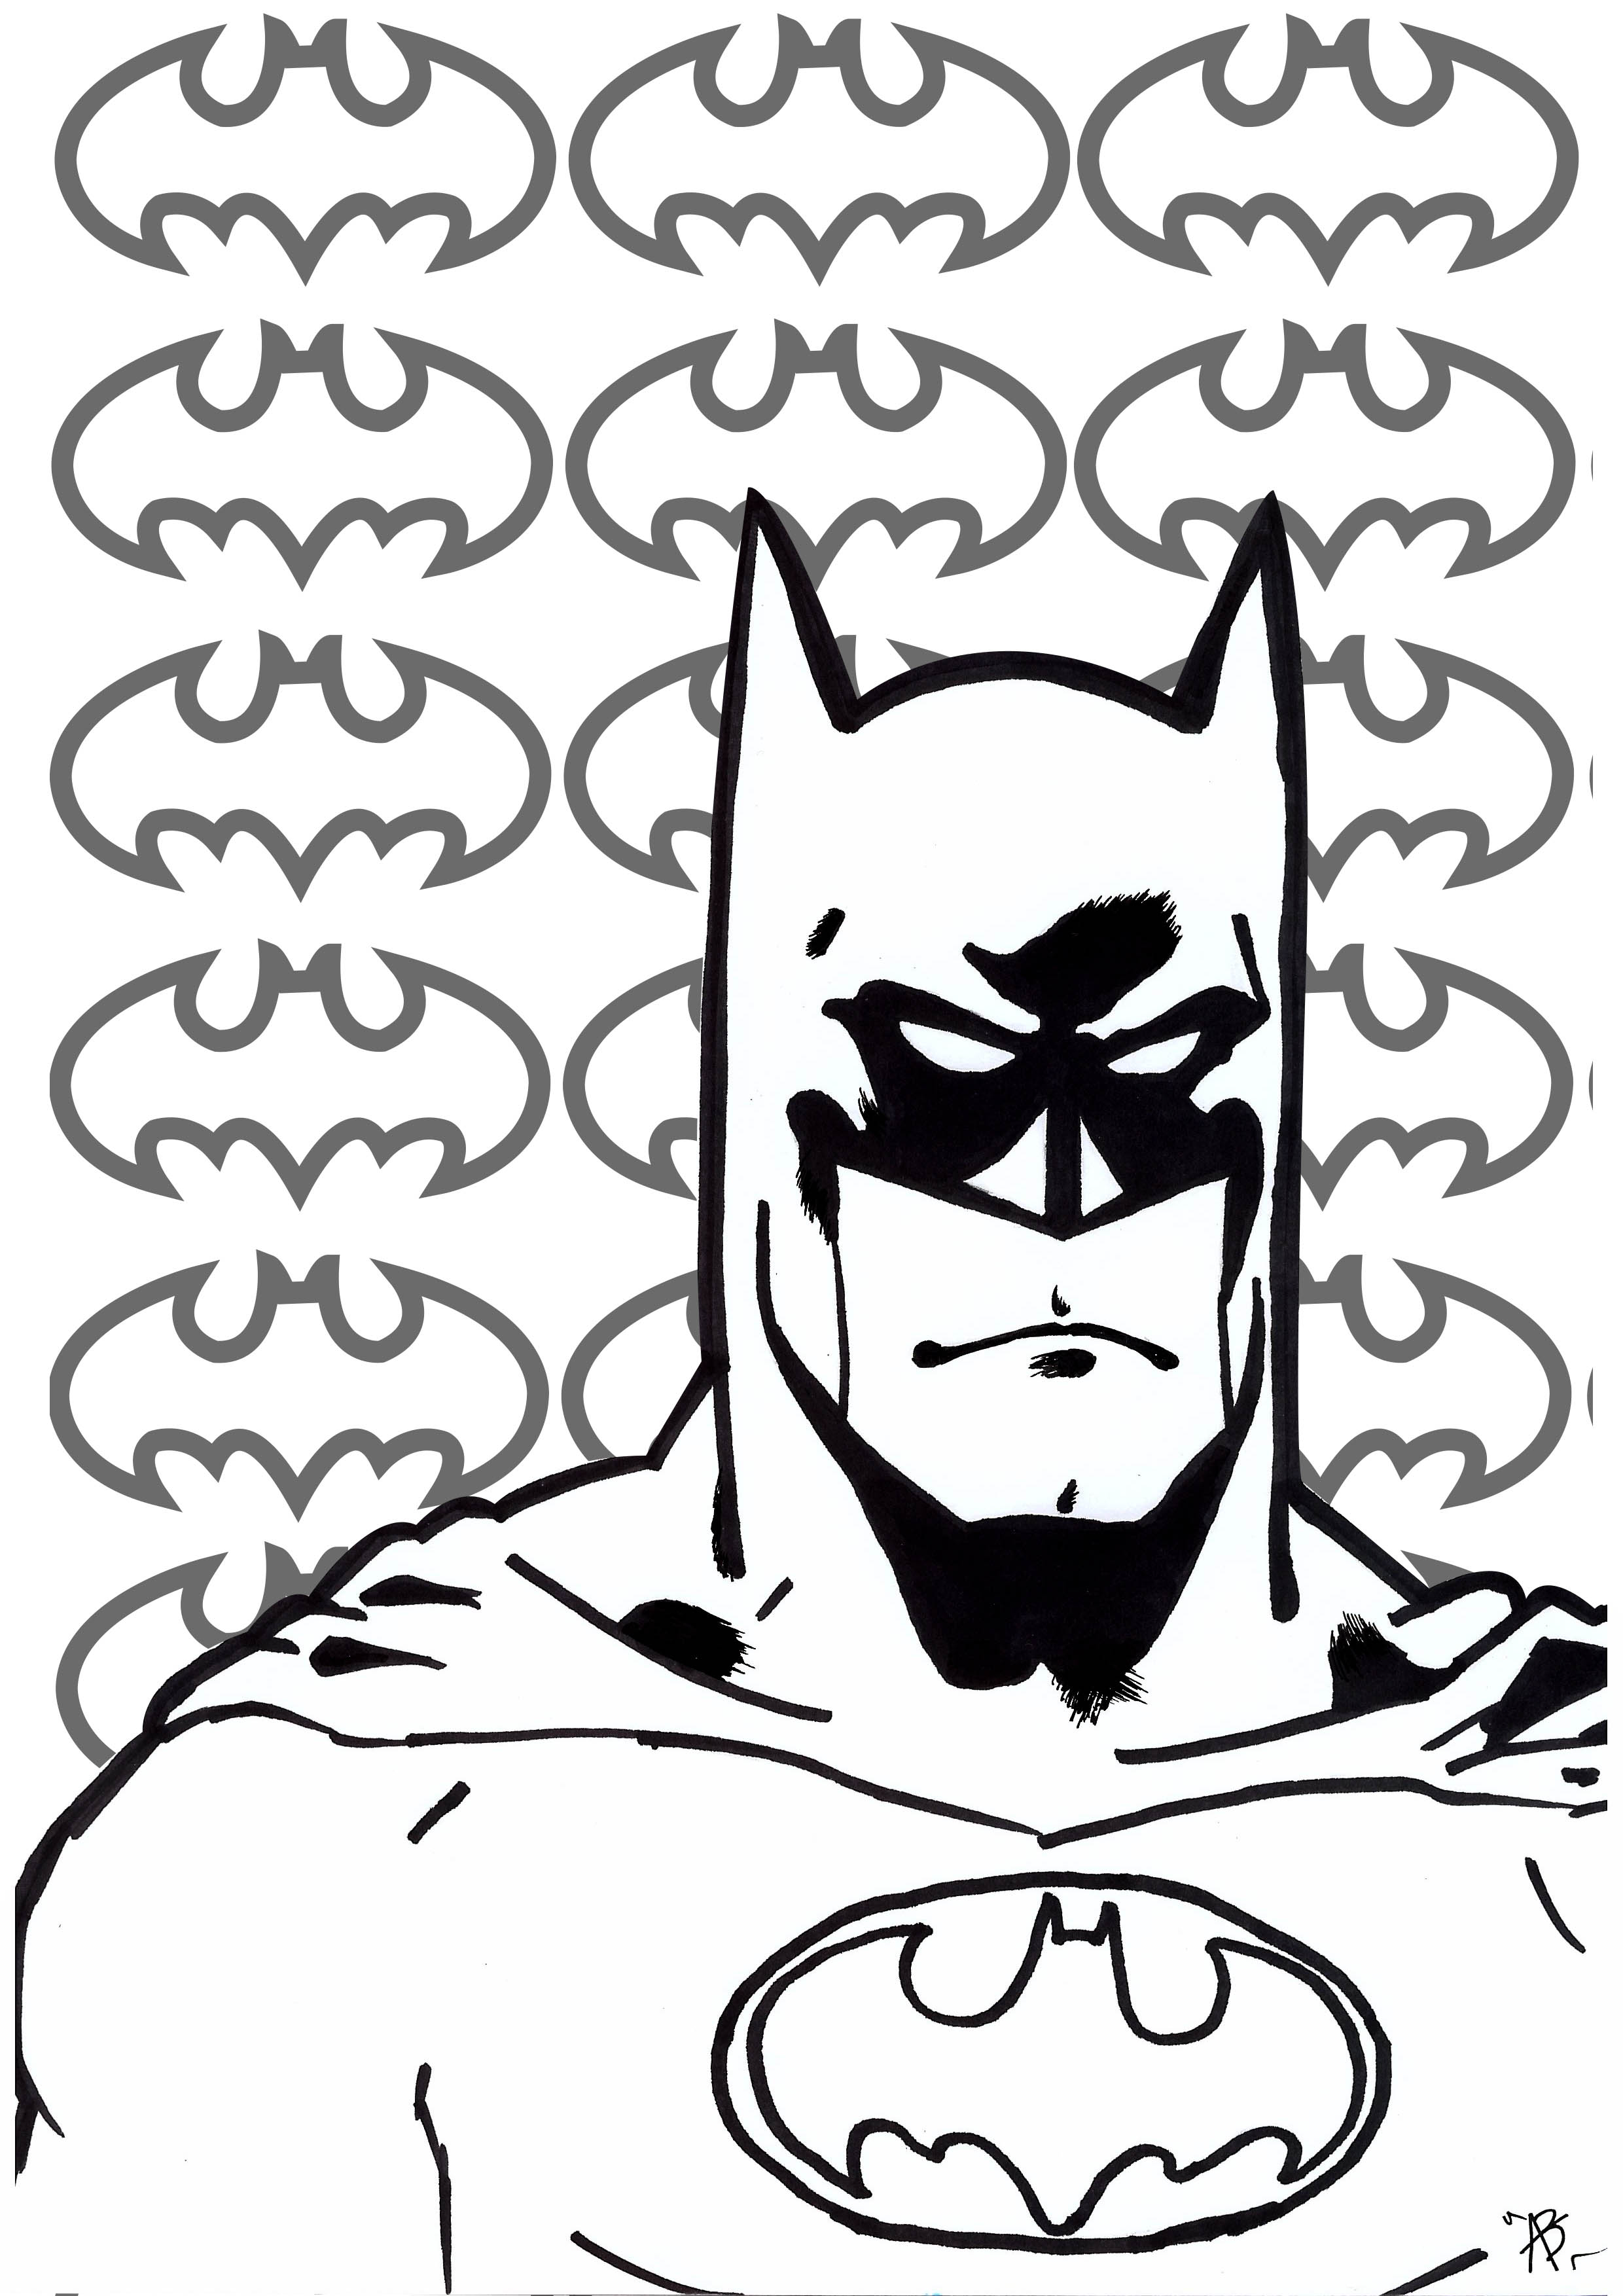 Coloring page inspired by The Batman (DC Comics character)